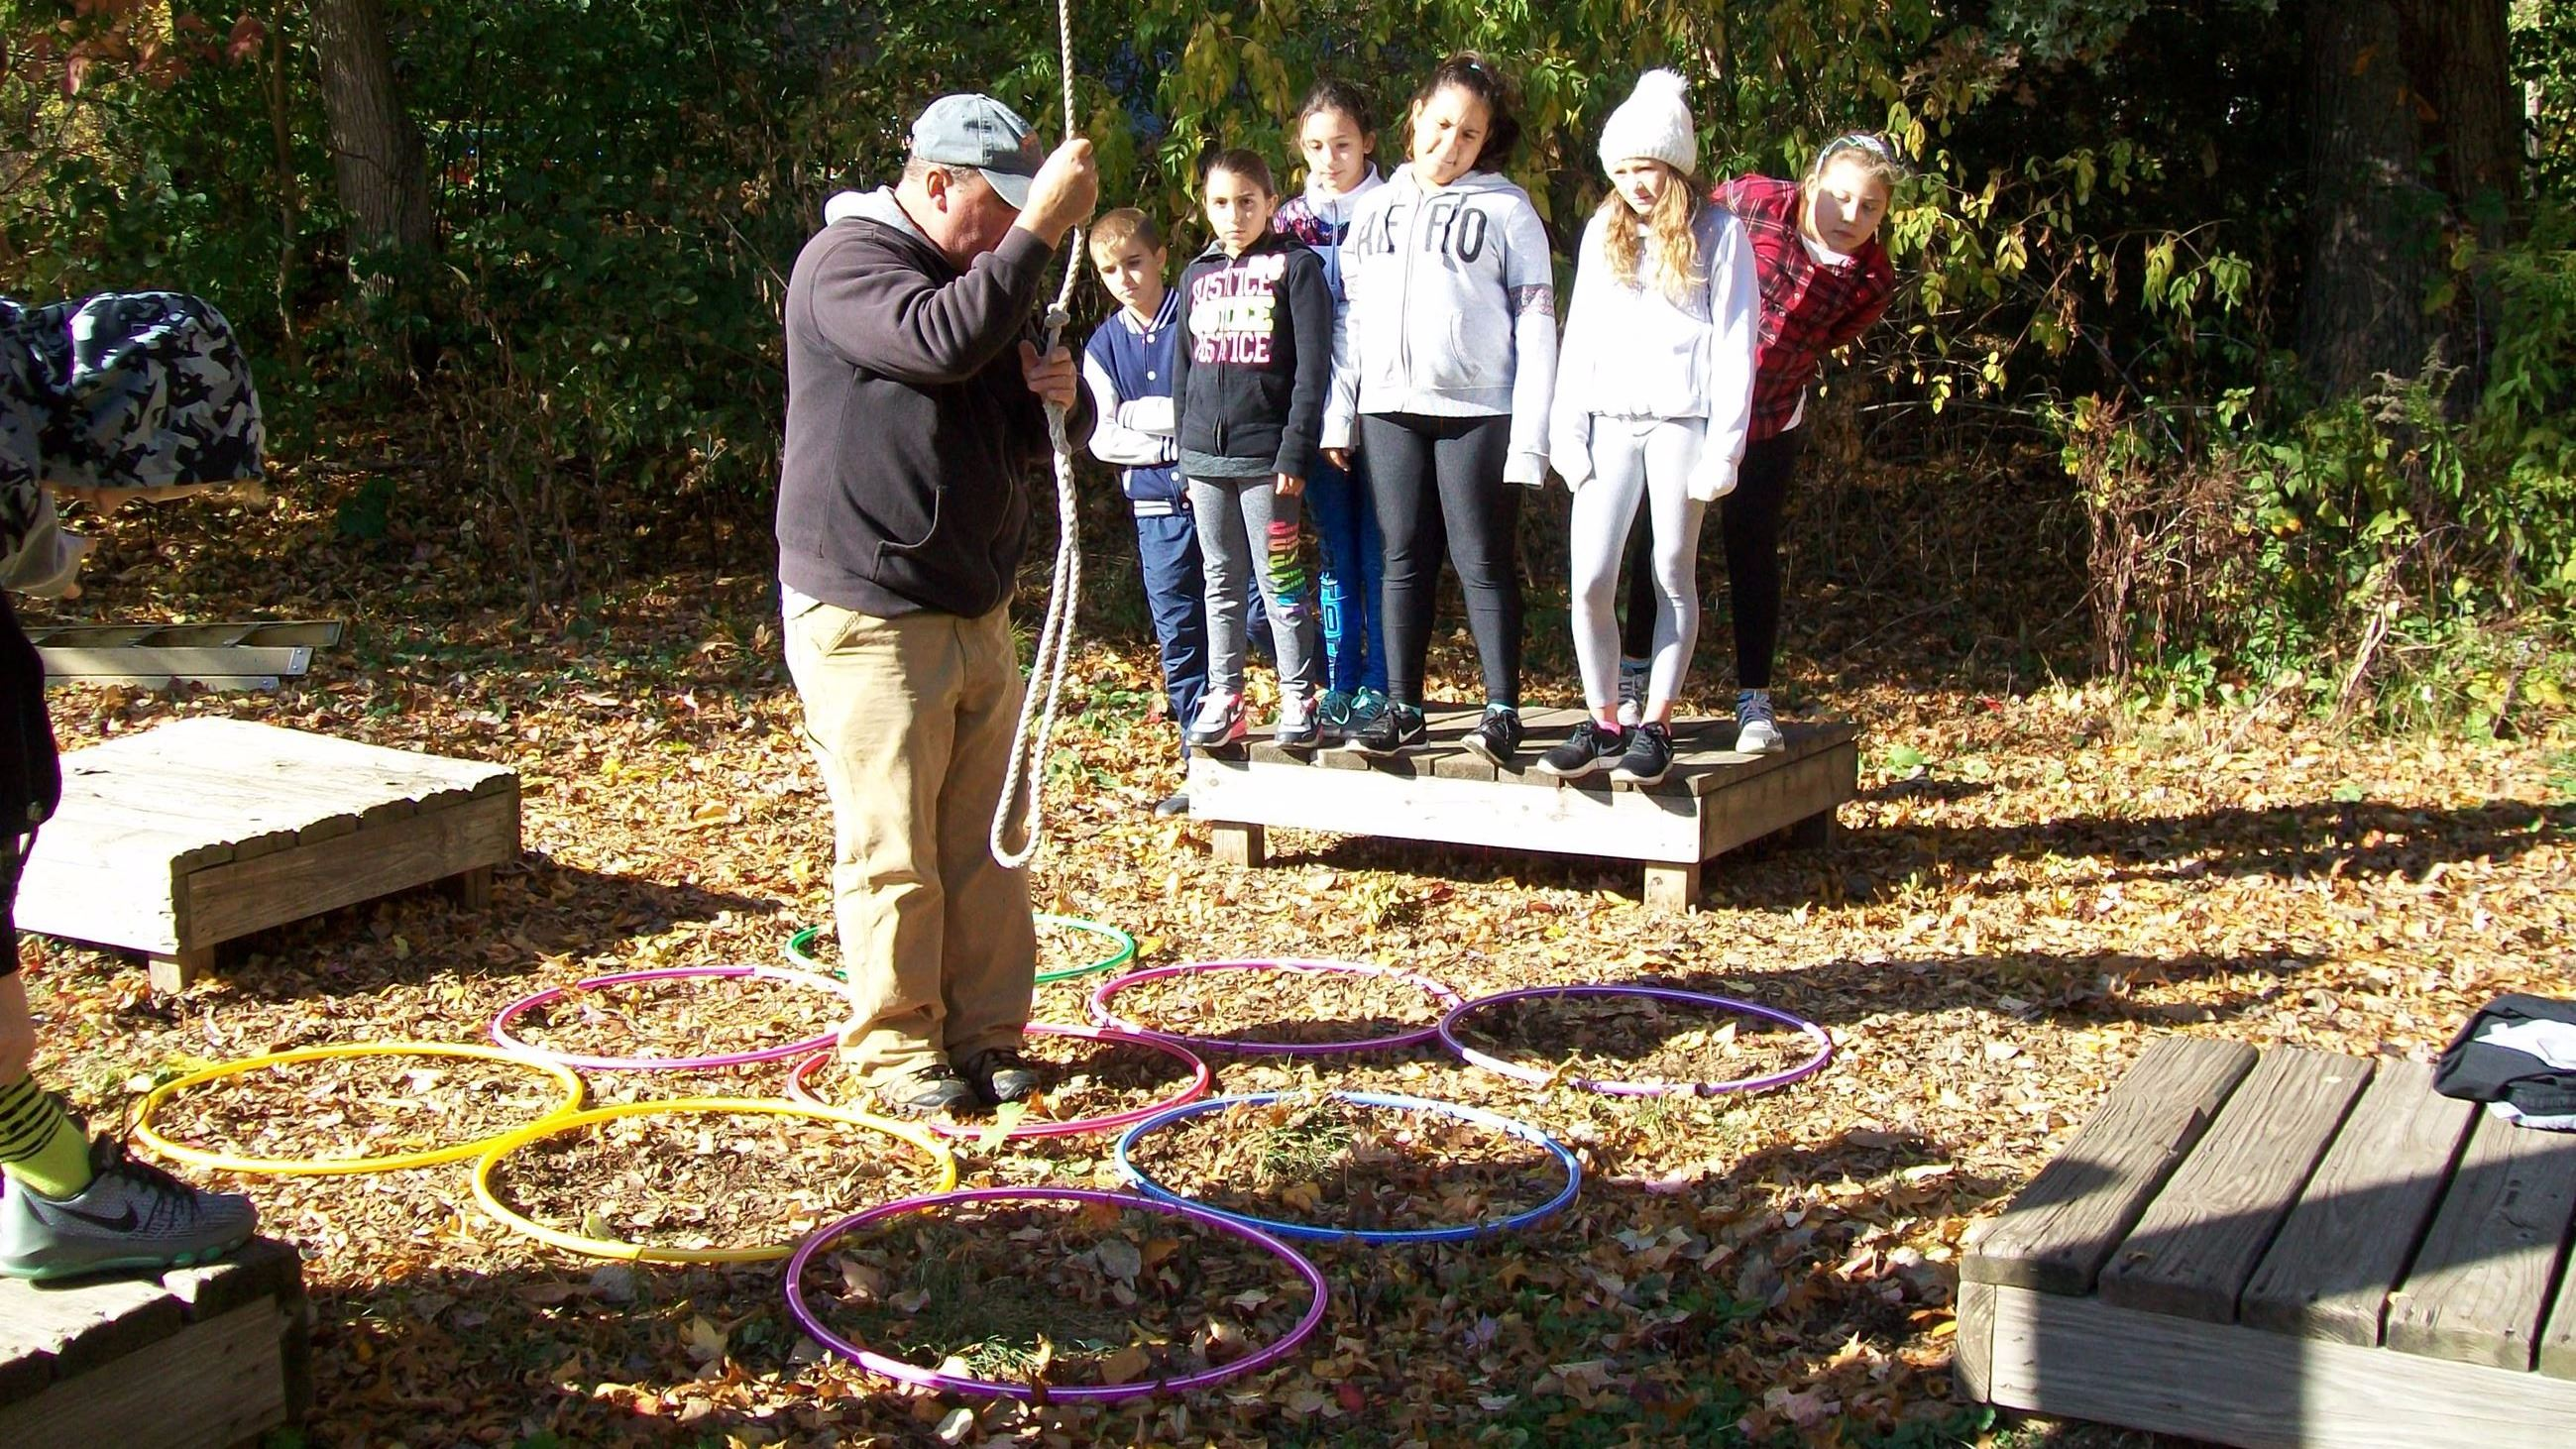 A group playing a game that uses a rope swing and low platforms